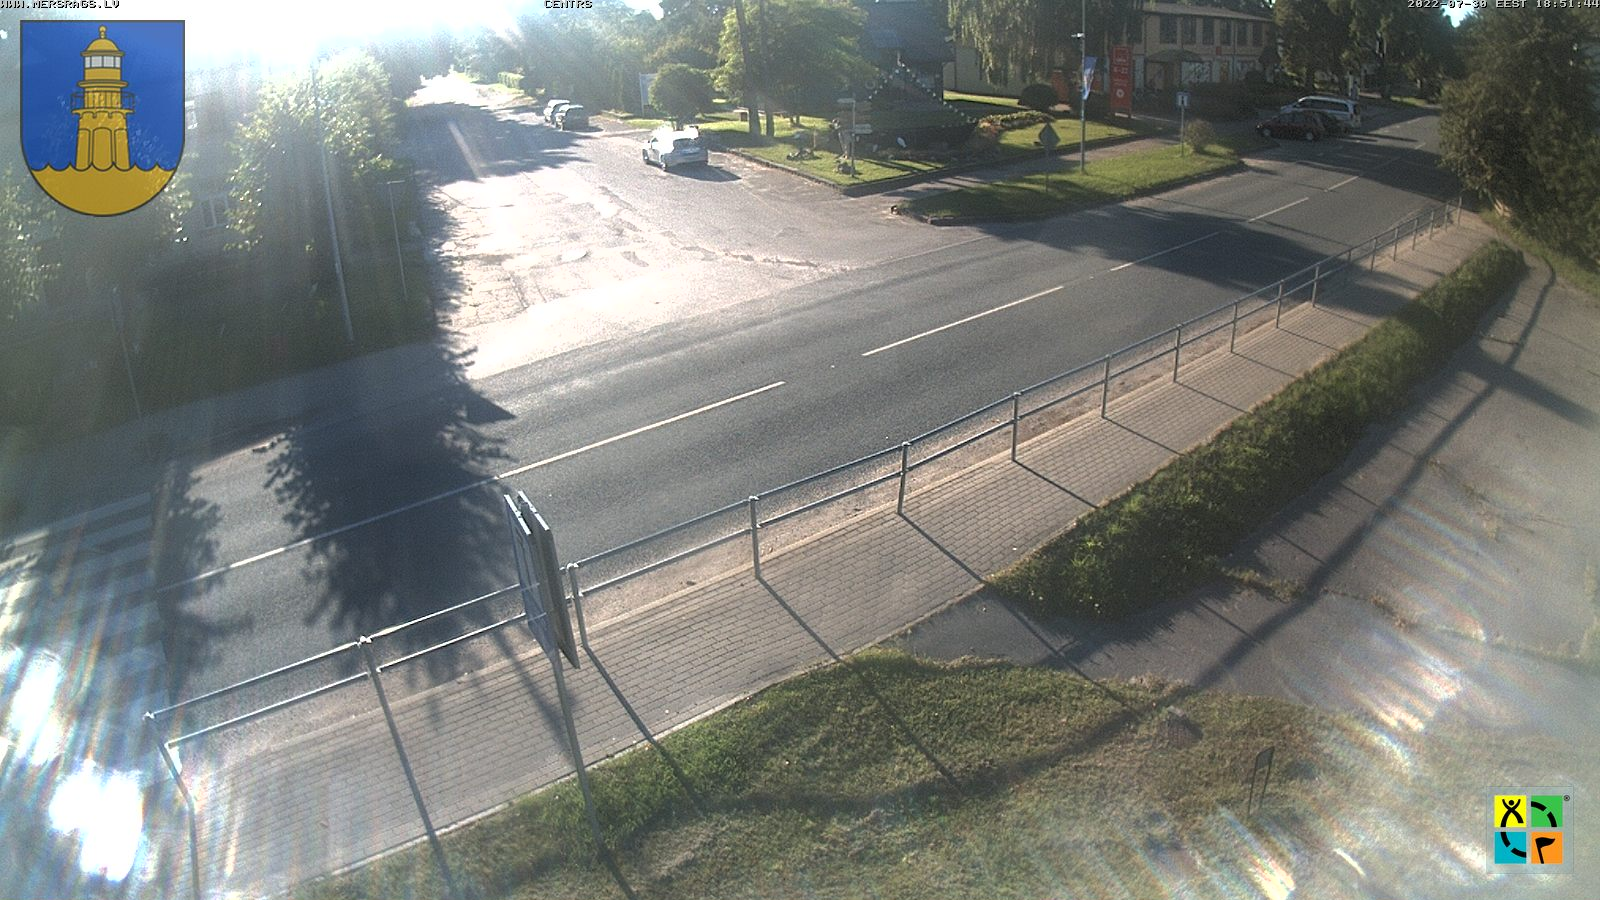 Webcam in Mersrags - City center